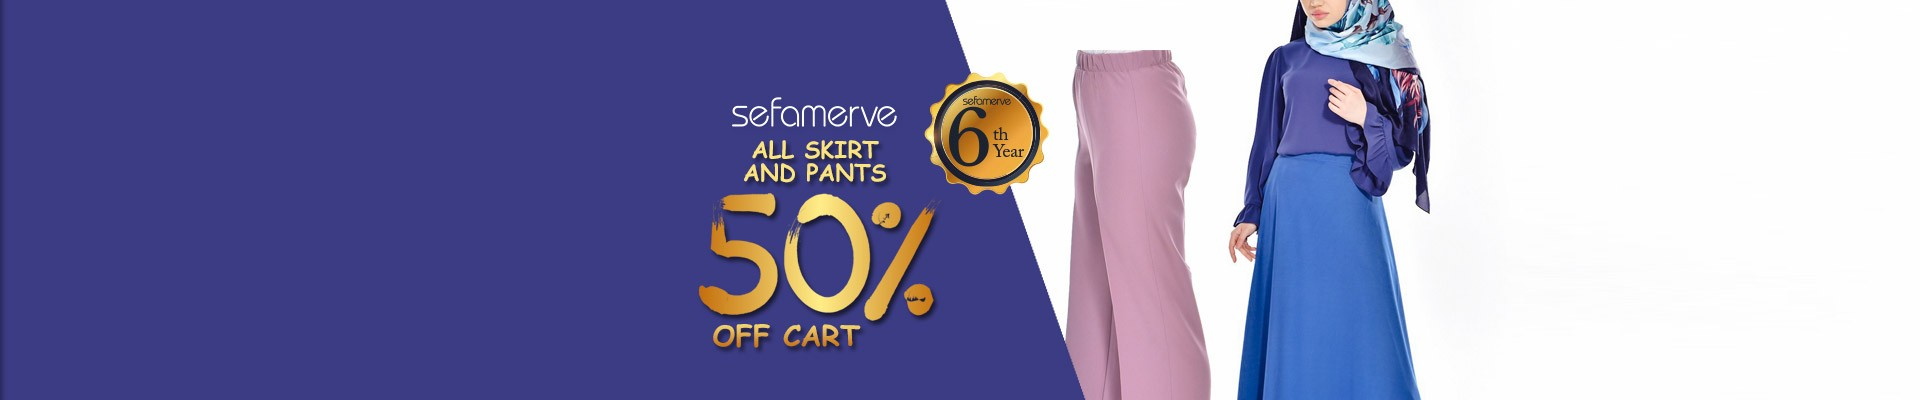 ALL SKIRT AND PANTS  50% OFF CART